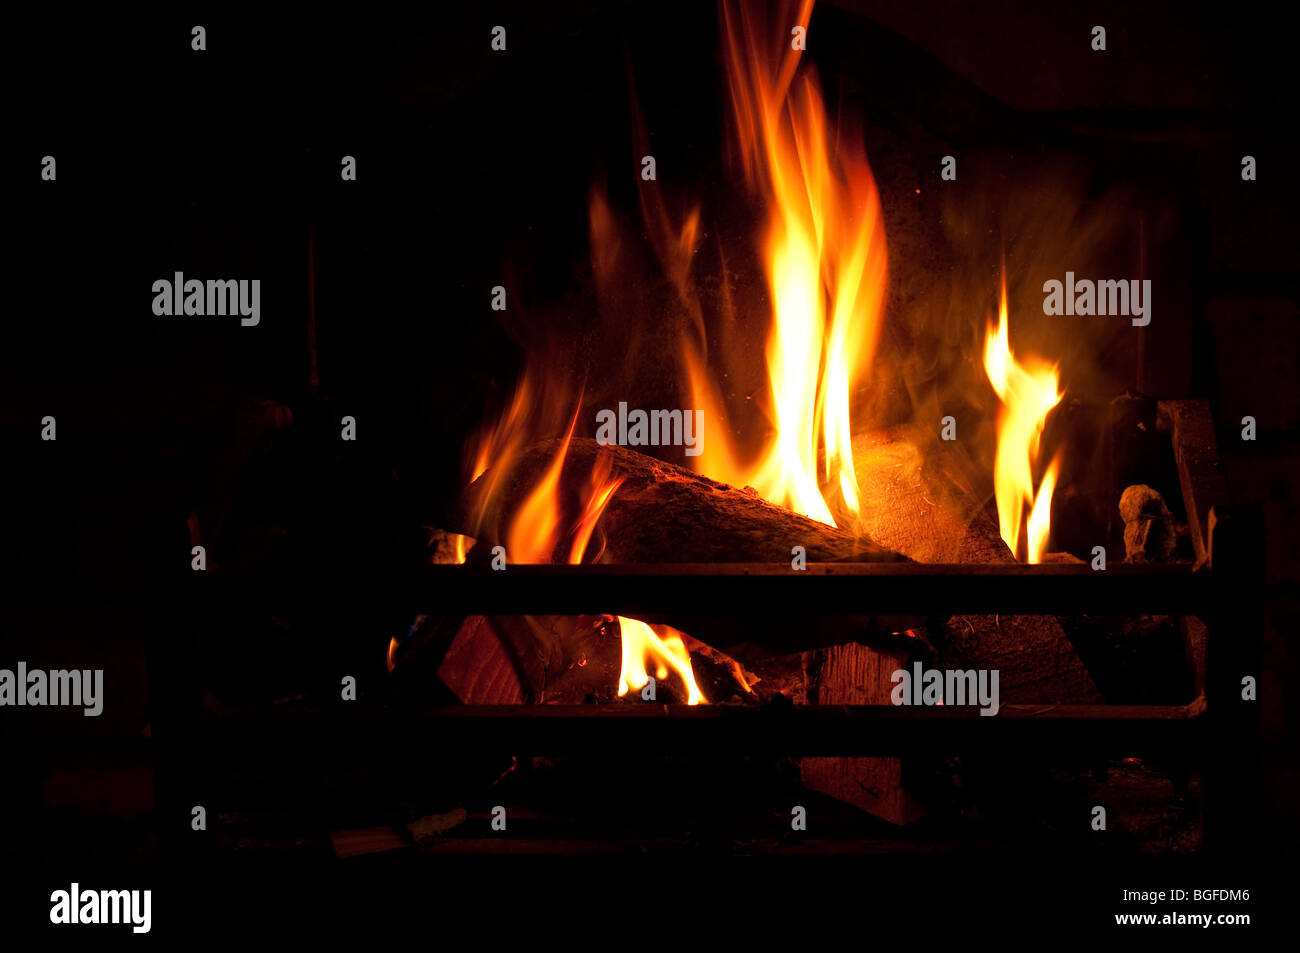 Hearth and Home - a real log fire. - Stock Image